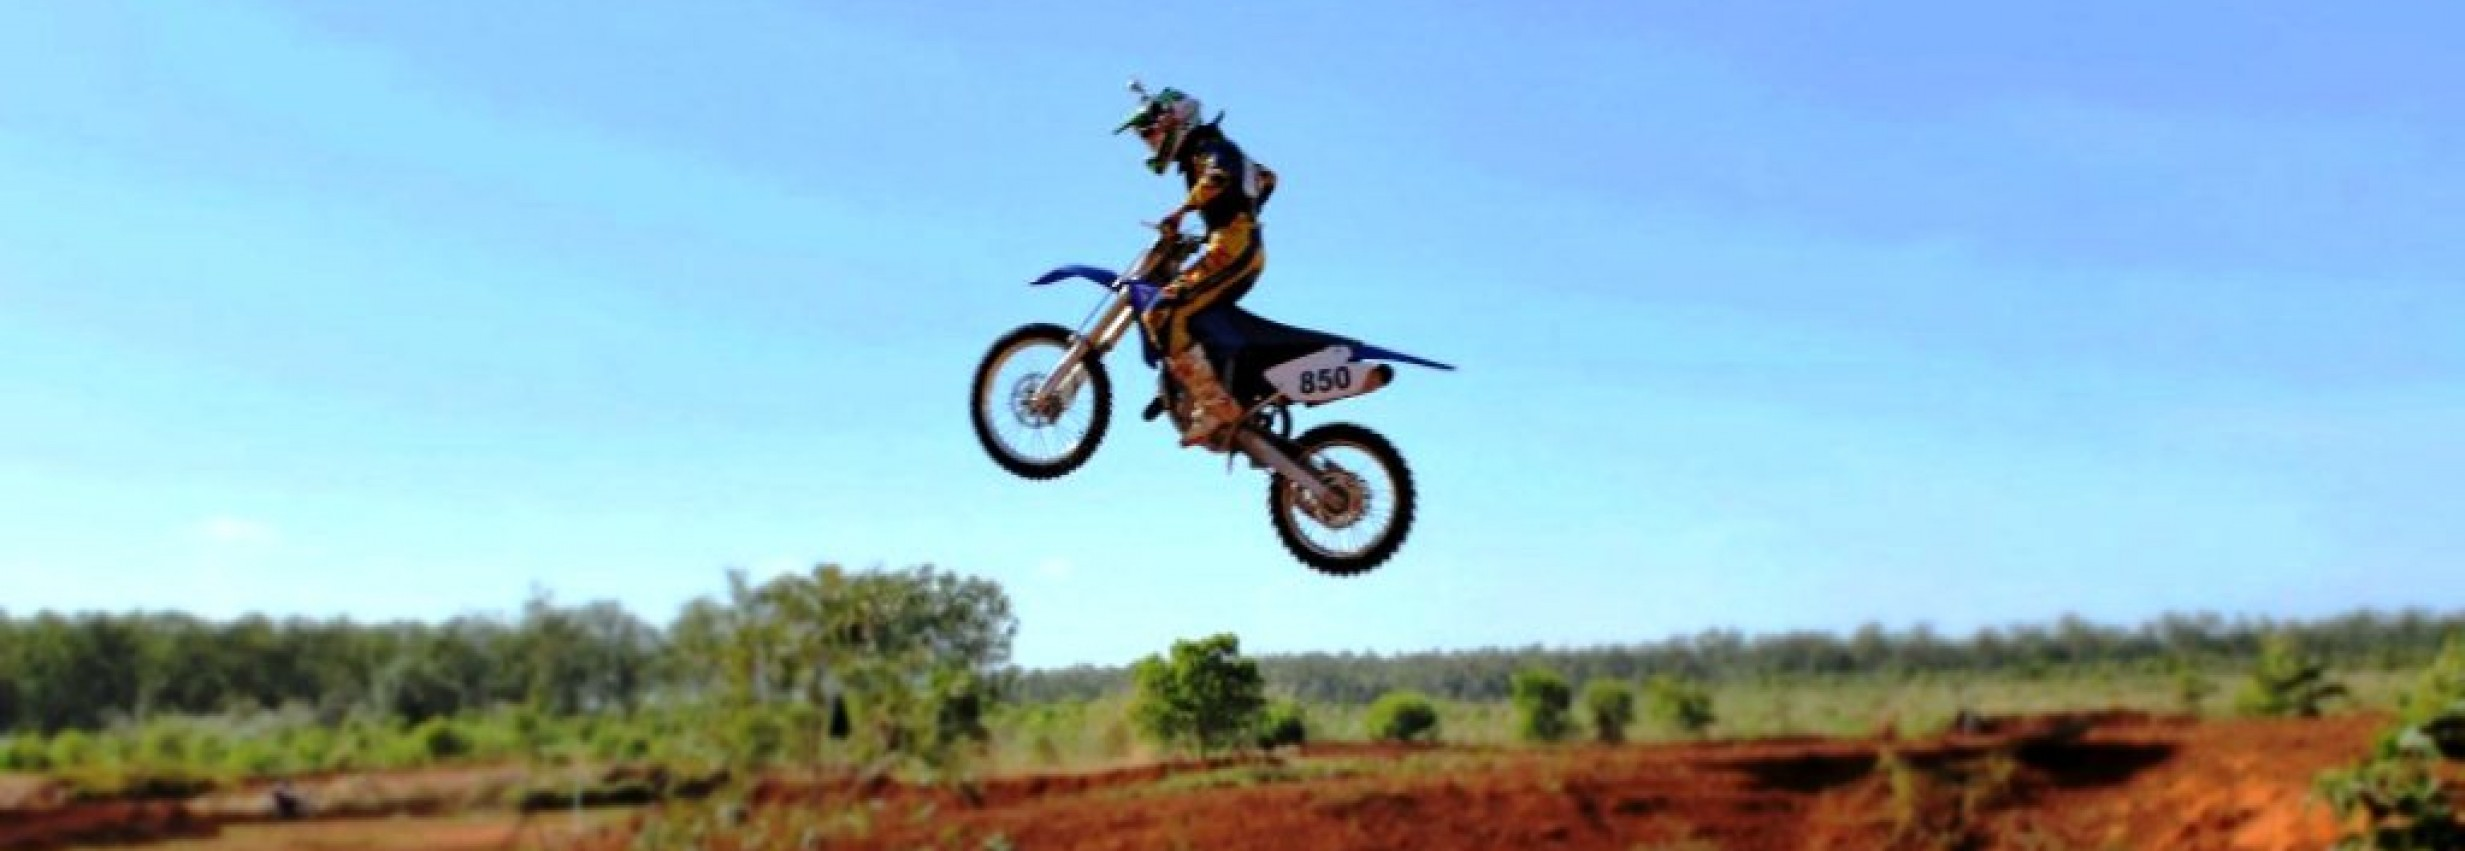 Weipa MX Track – Cape York Motorcycle Club